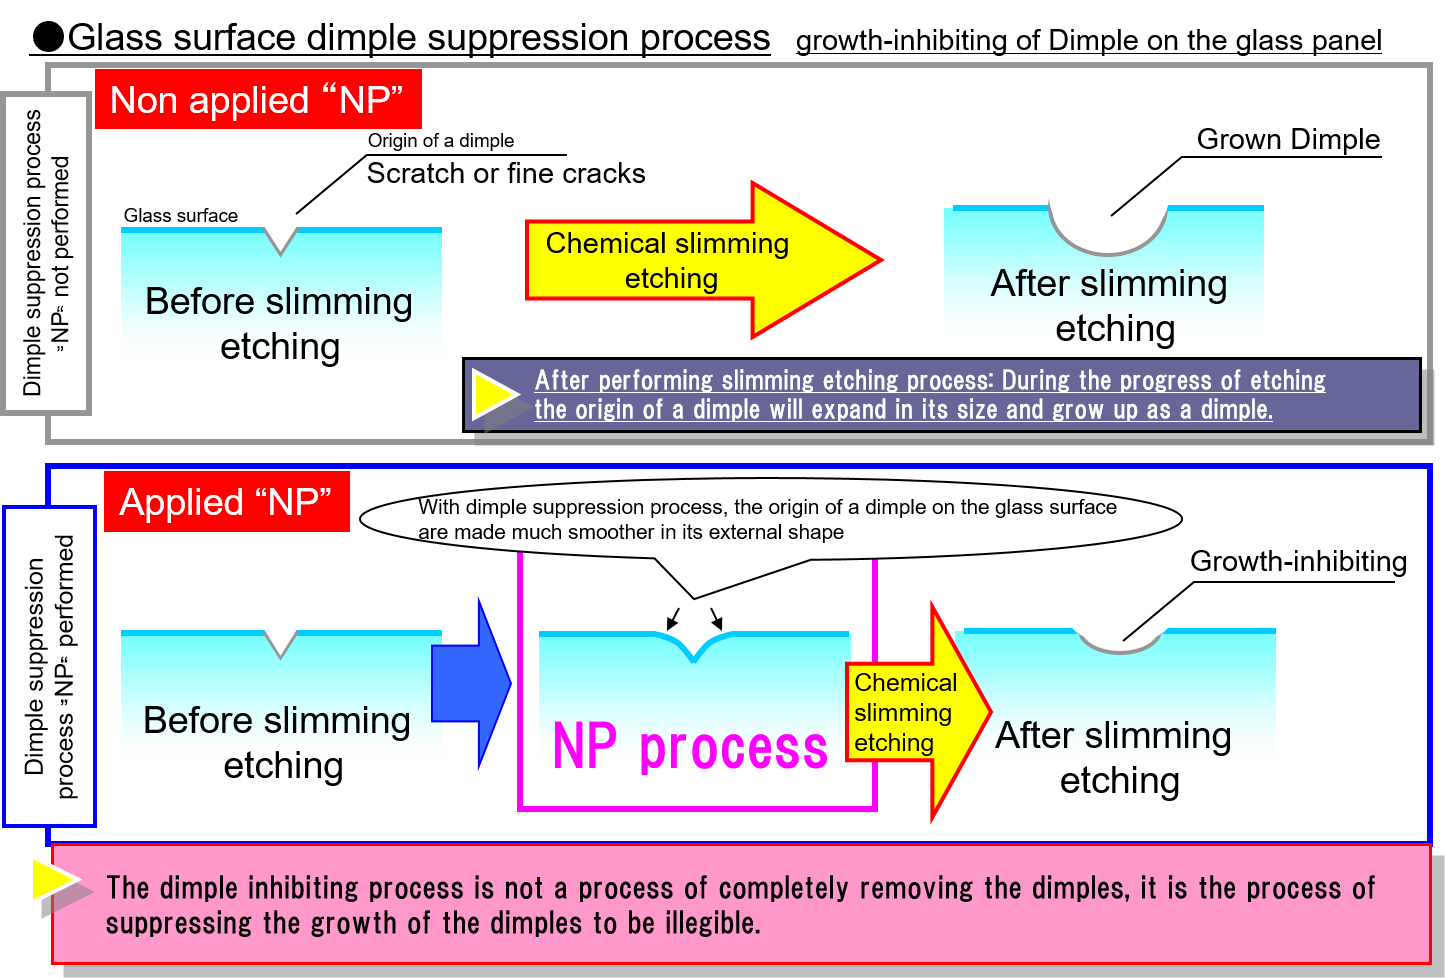 How dimples grow on glass surface & NSC's original dimple suppression process